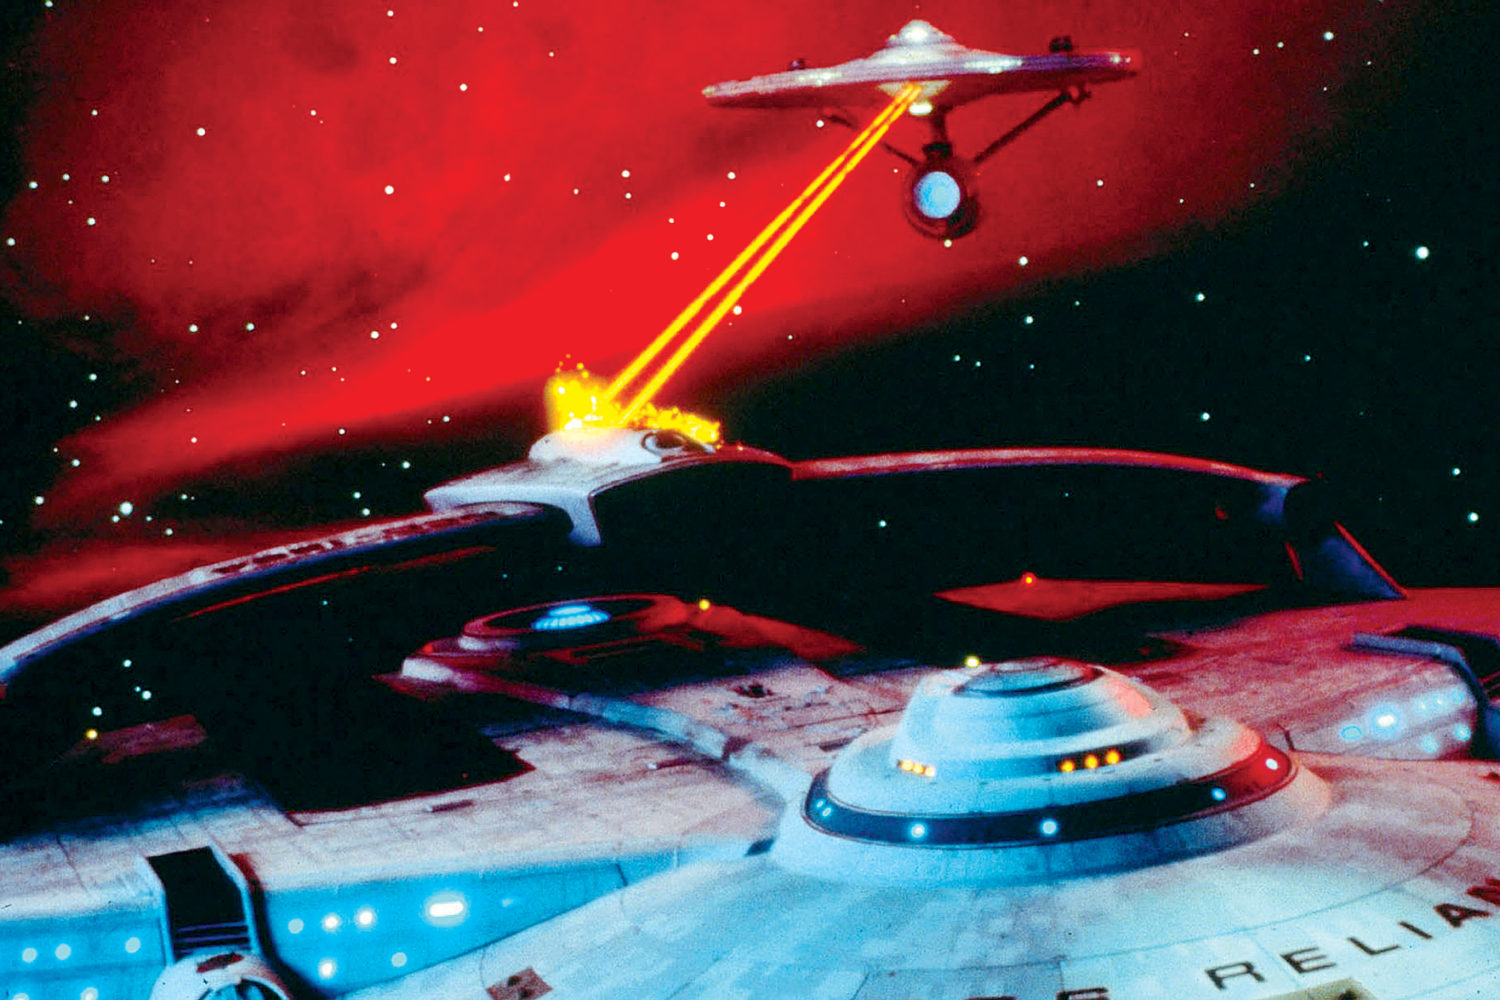 Film Still From Star Trek Ii: The Wrath Of Khan by Allstar/Cinetext/PARAMOUNT.